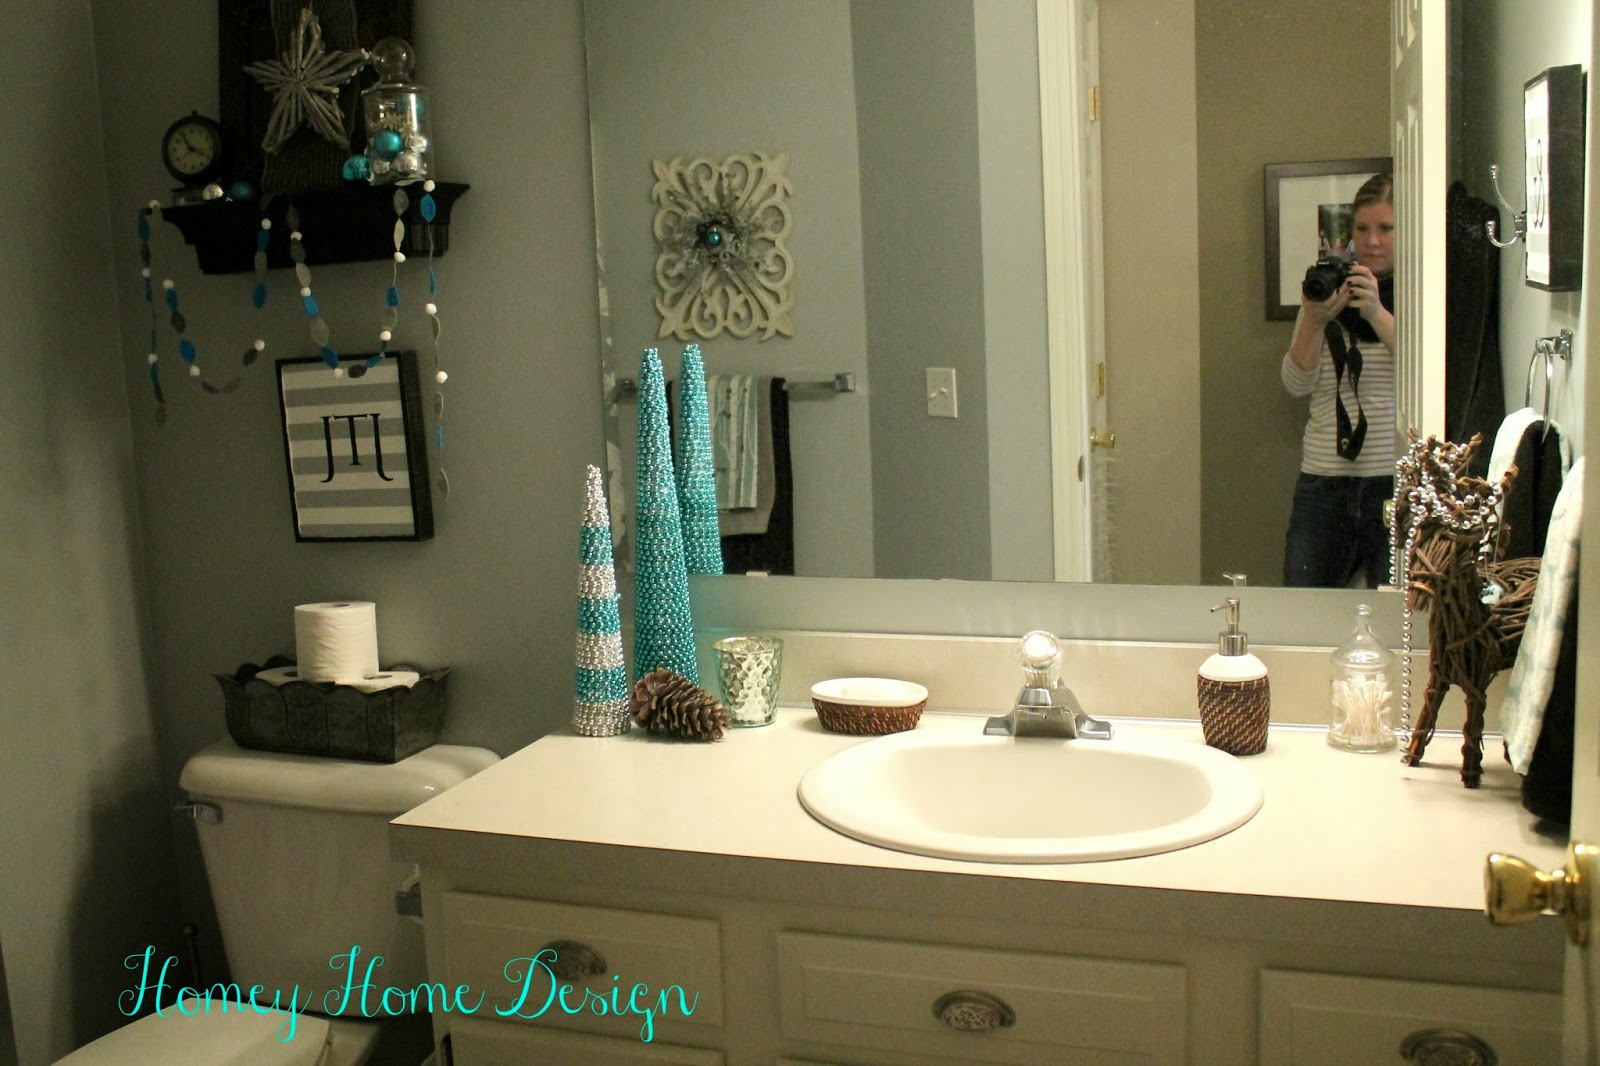 Homey home design bathroom christmas ideas for Bathroom decor